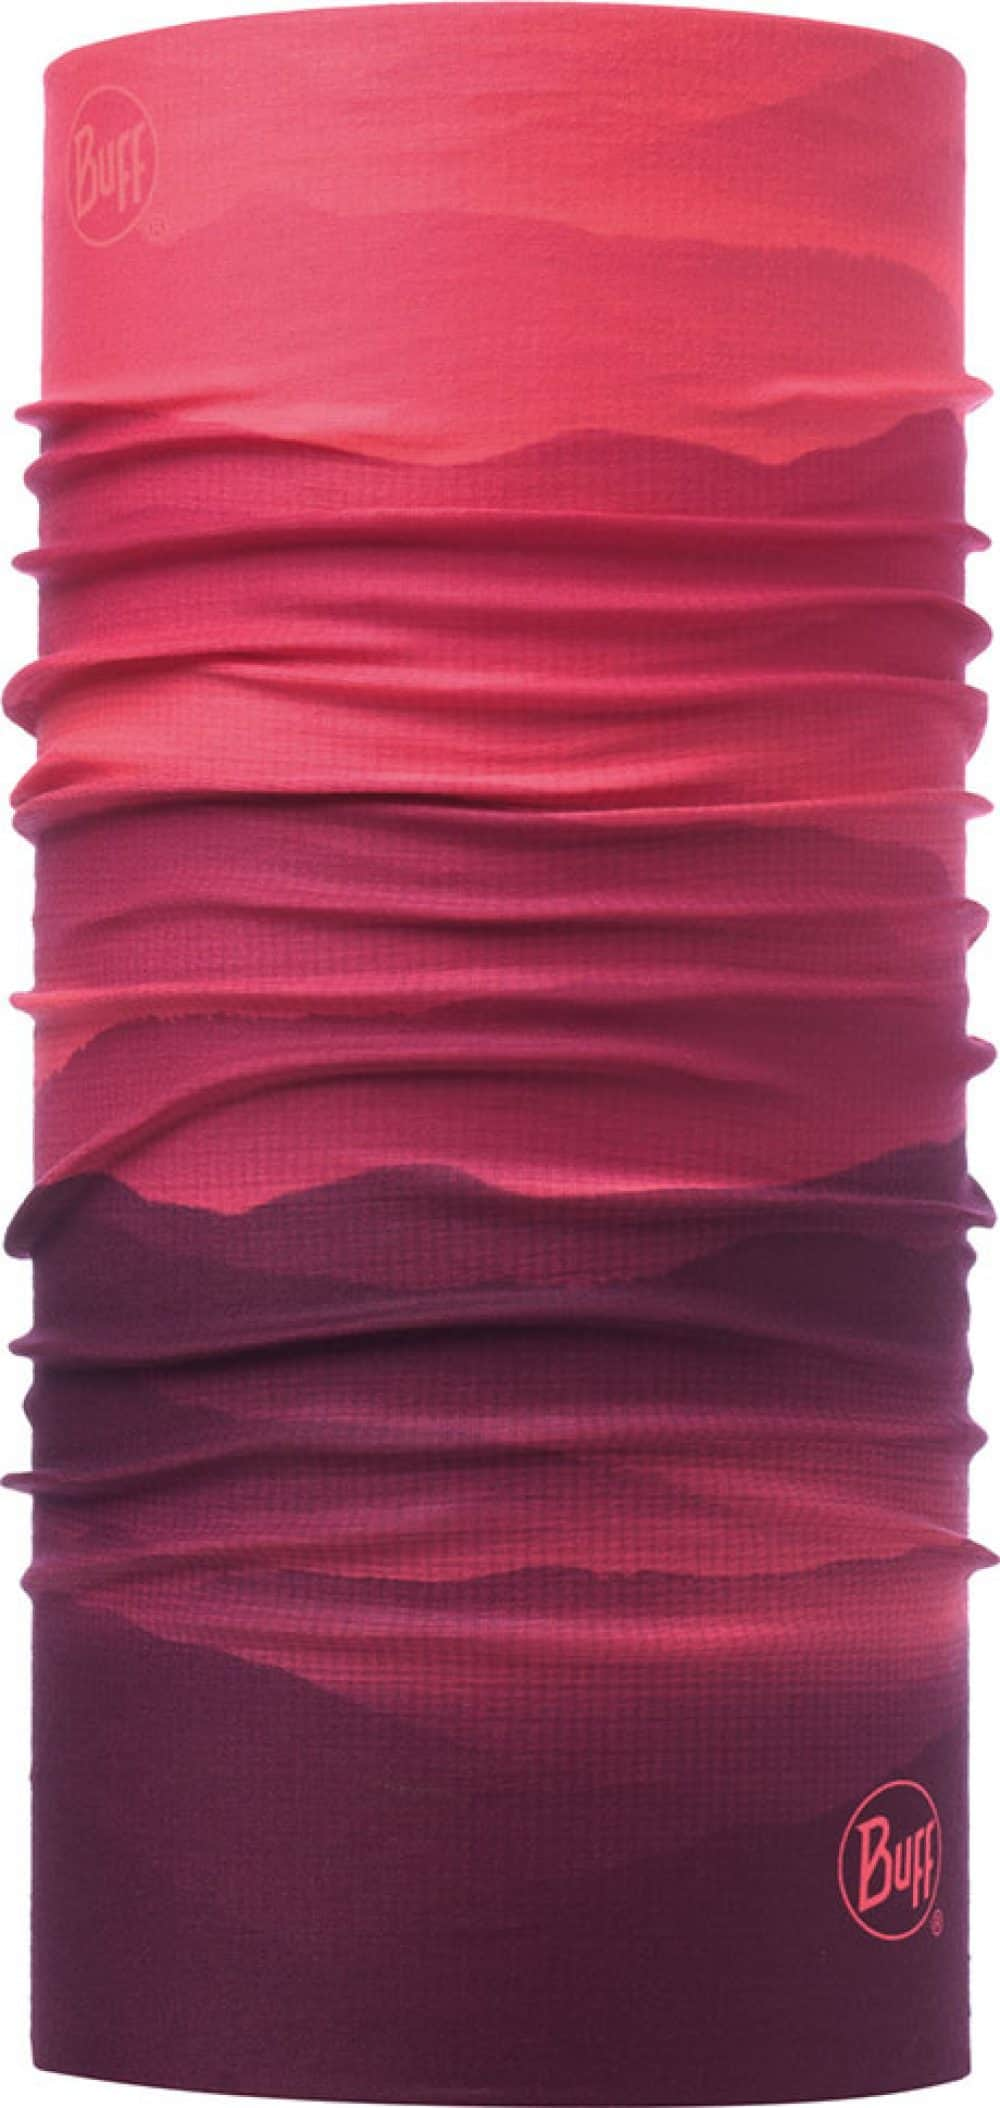 "Studio photo of the Original Buff® Design ""Soft Hills Pink"". Source: buff.eu"